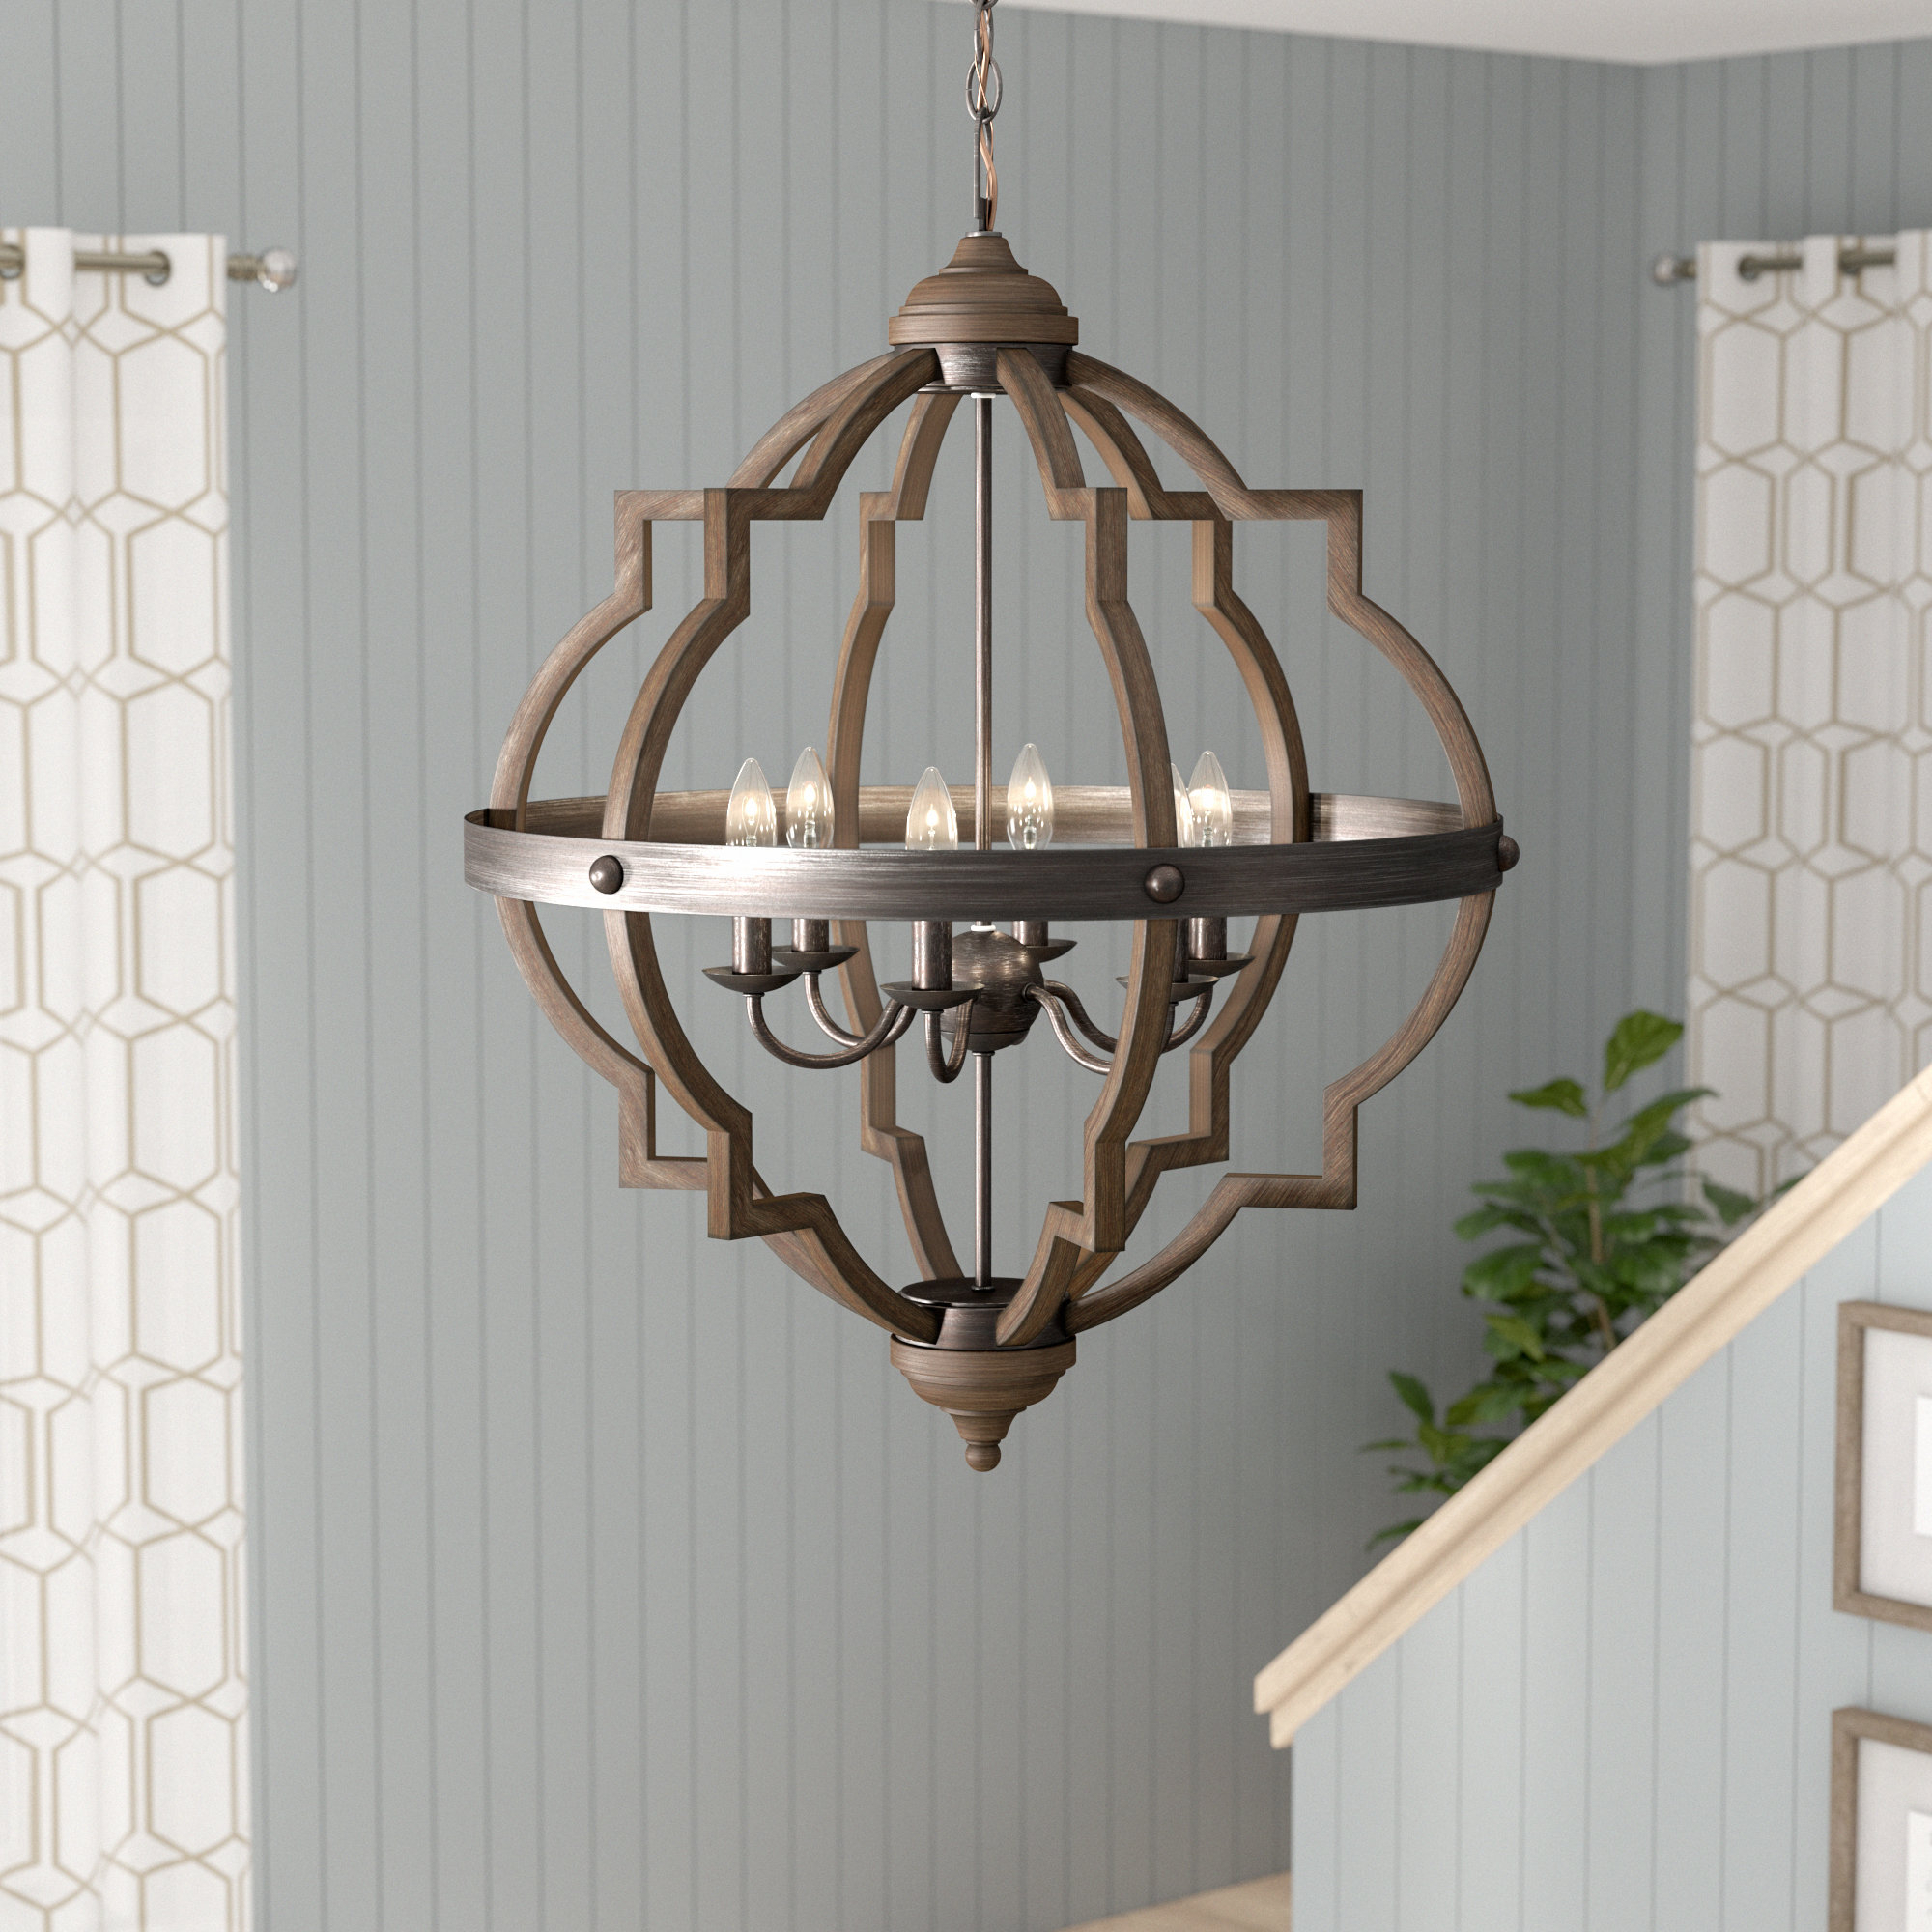 Bennington 6-Light Candle Style Chandelier throughout Donna 6-Light Globe Chandeliers (Image 2 of 30)